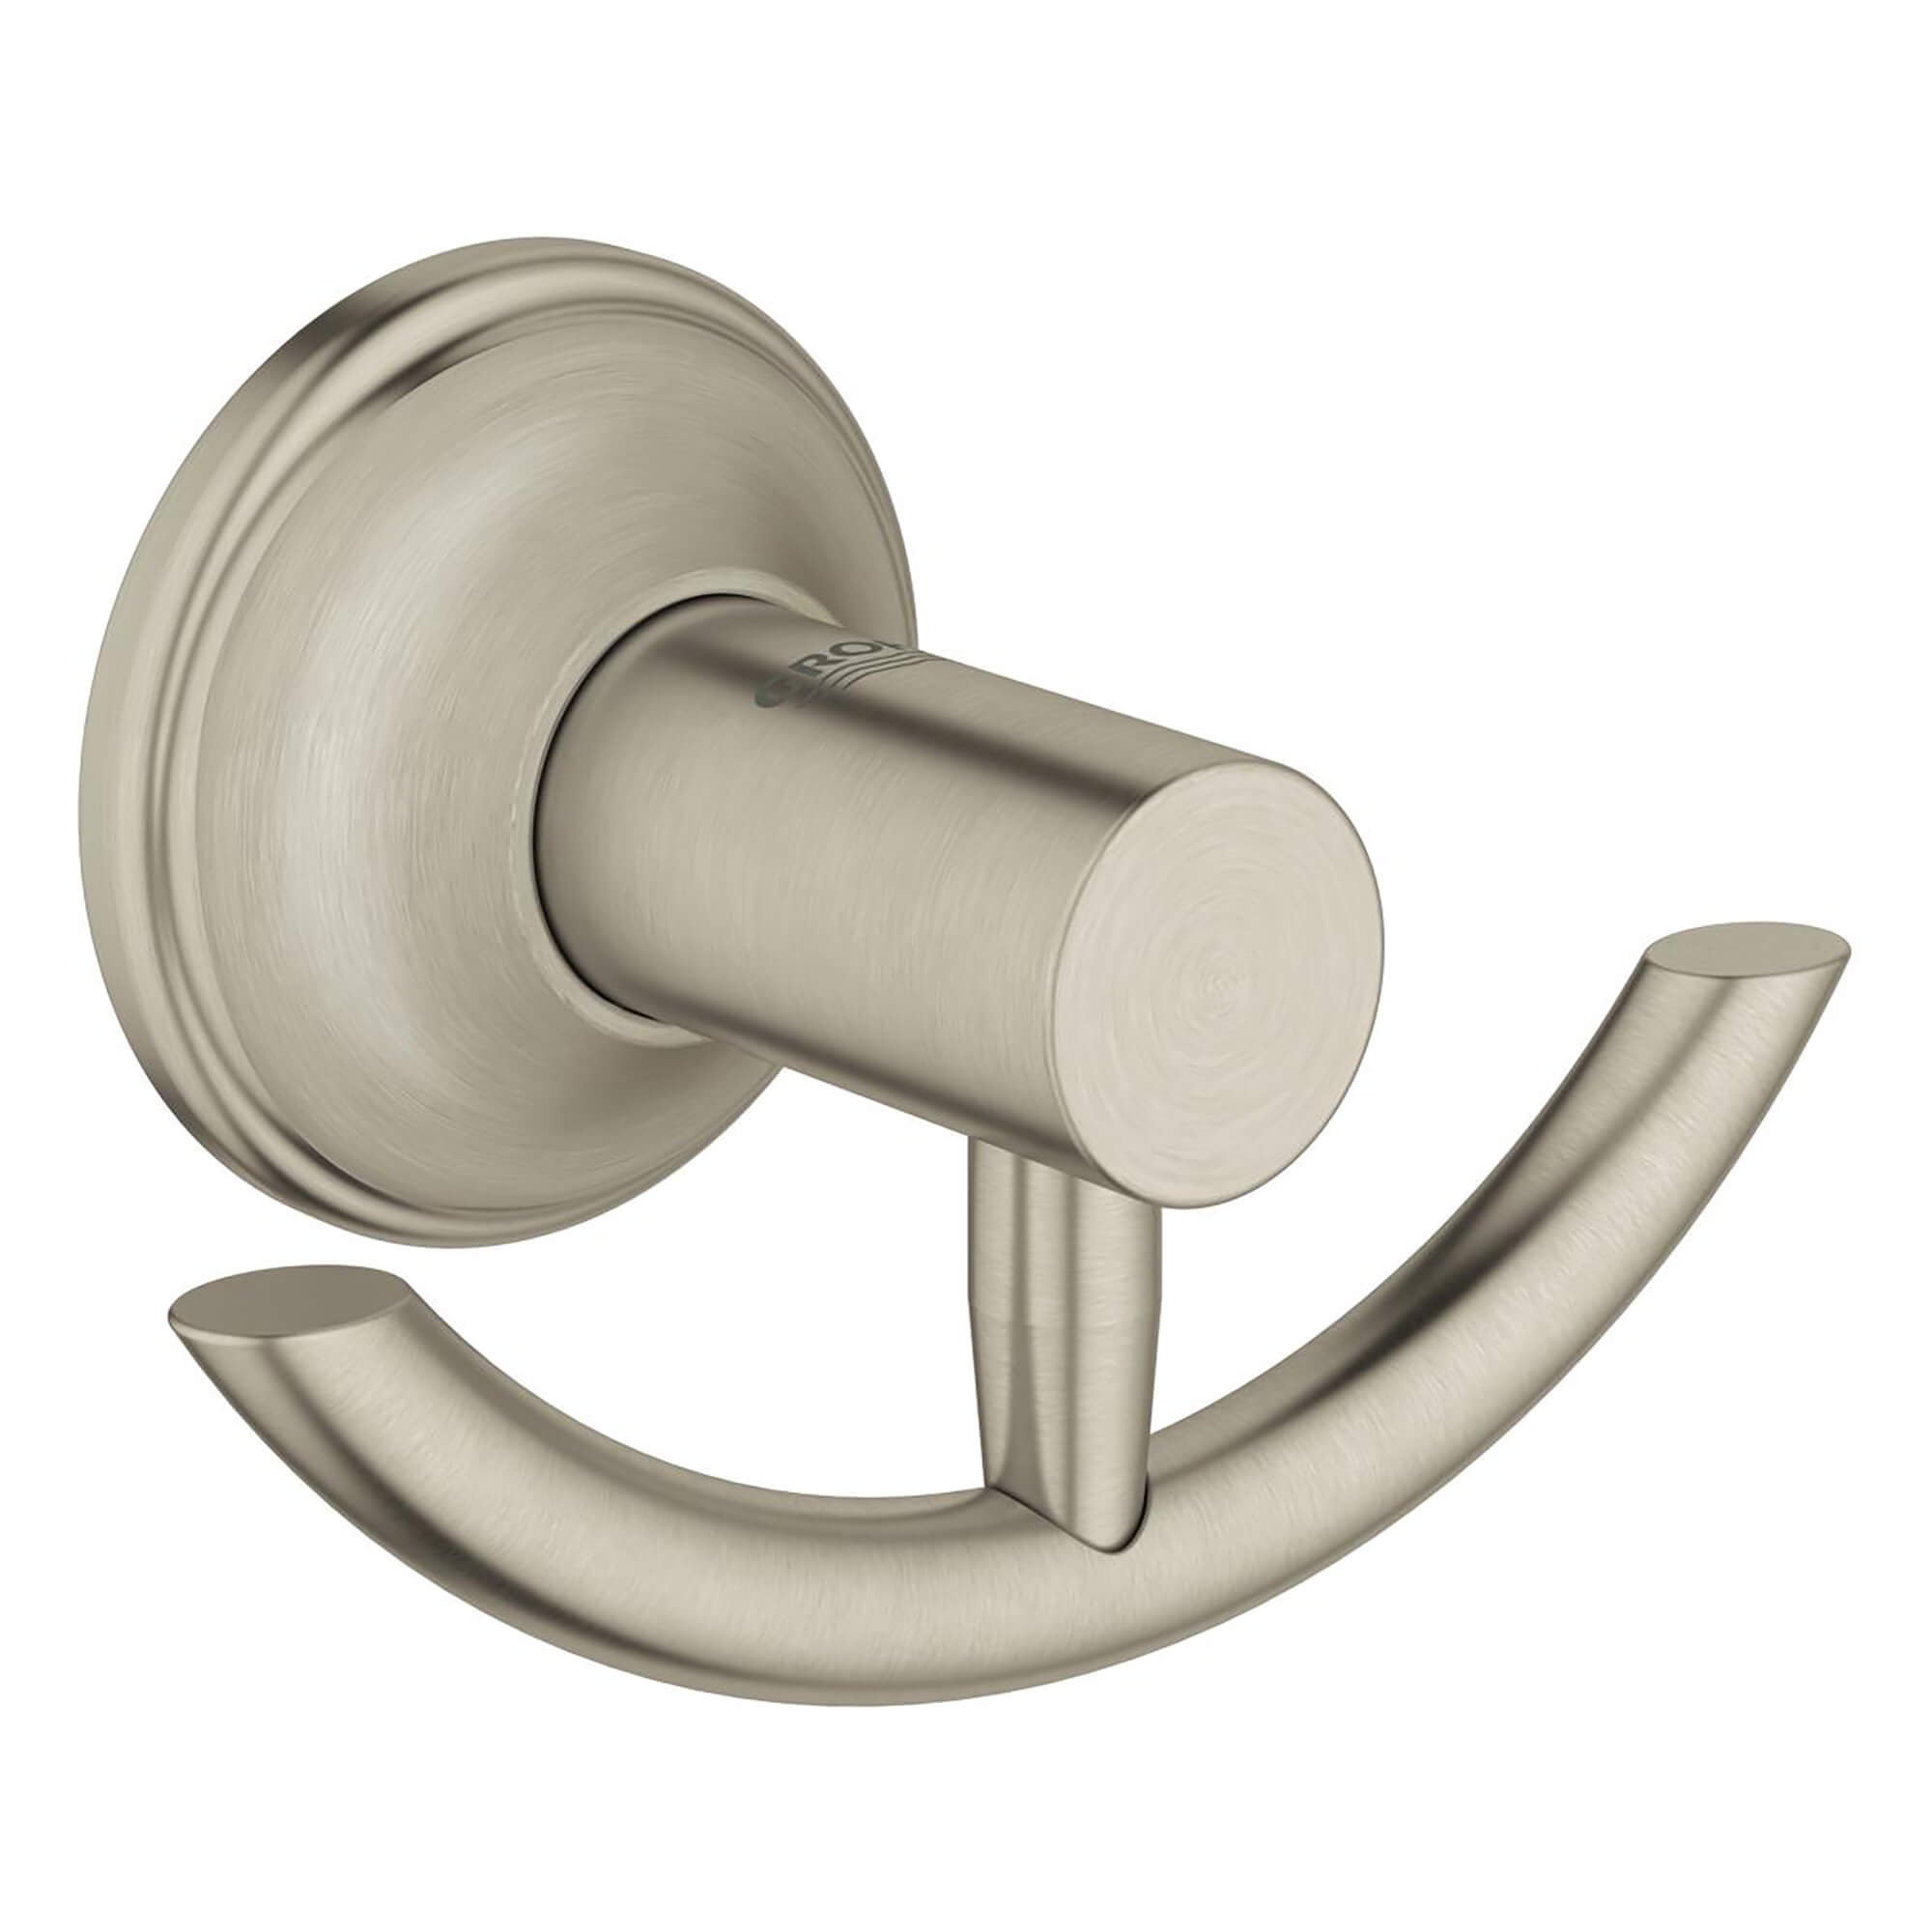 Fairborn Hook GROHE BRUSHED NICKEL